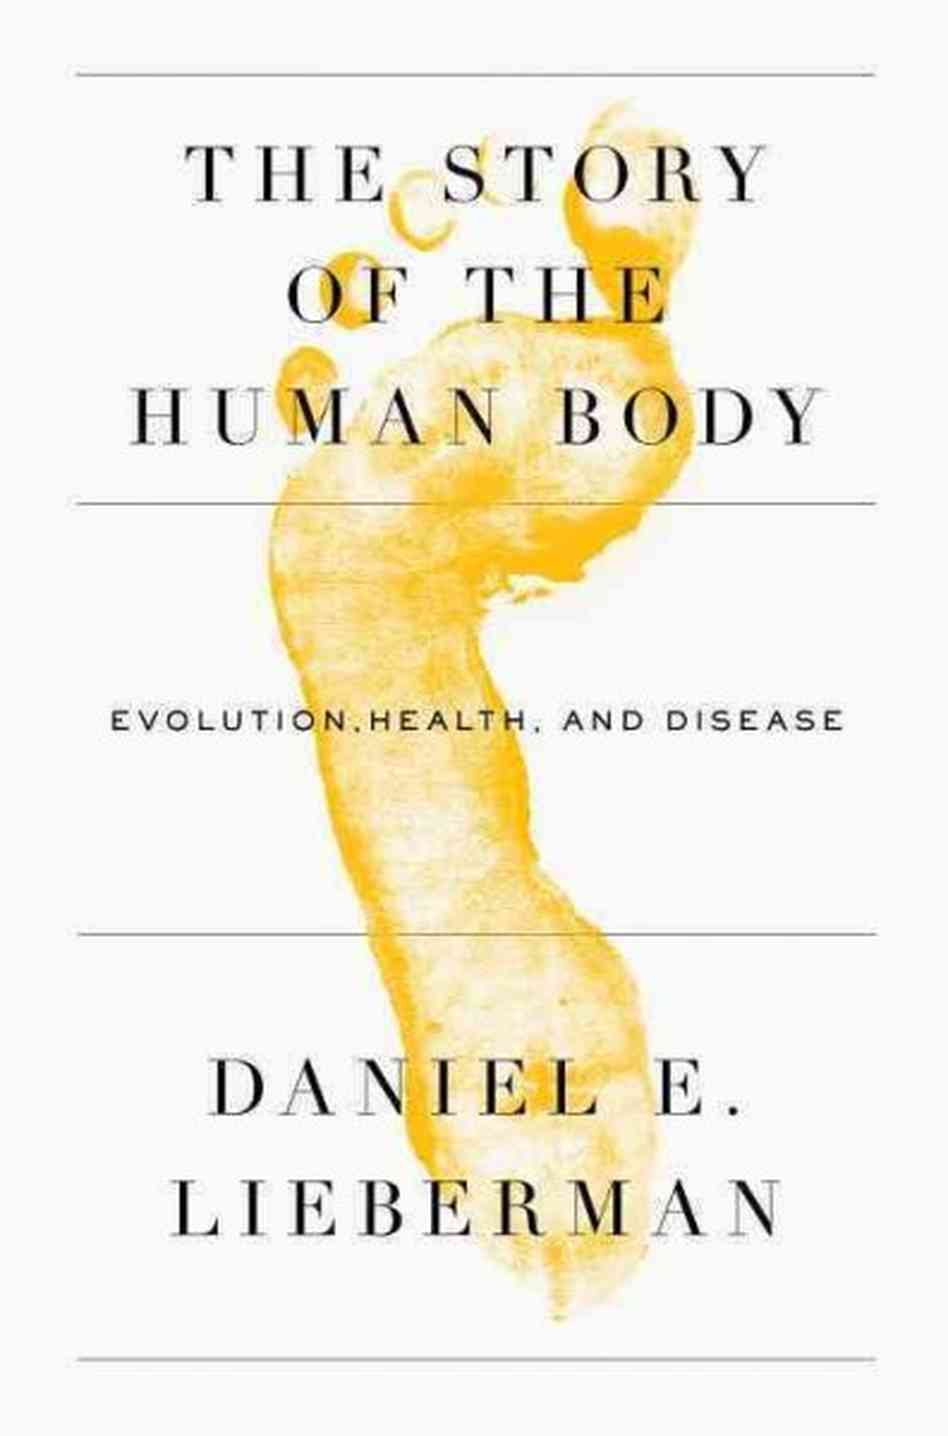 THE STORY OF THE HUMAN BODY BY DANIEL LIEBERMAN